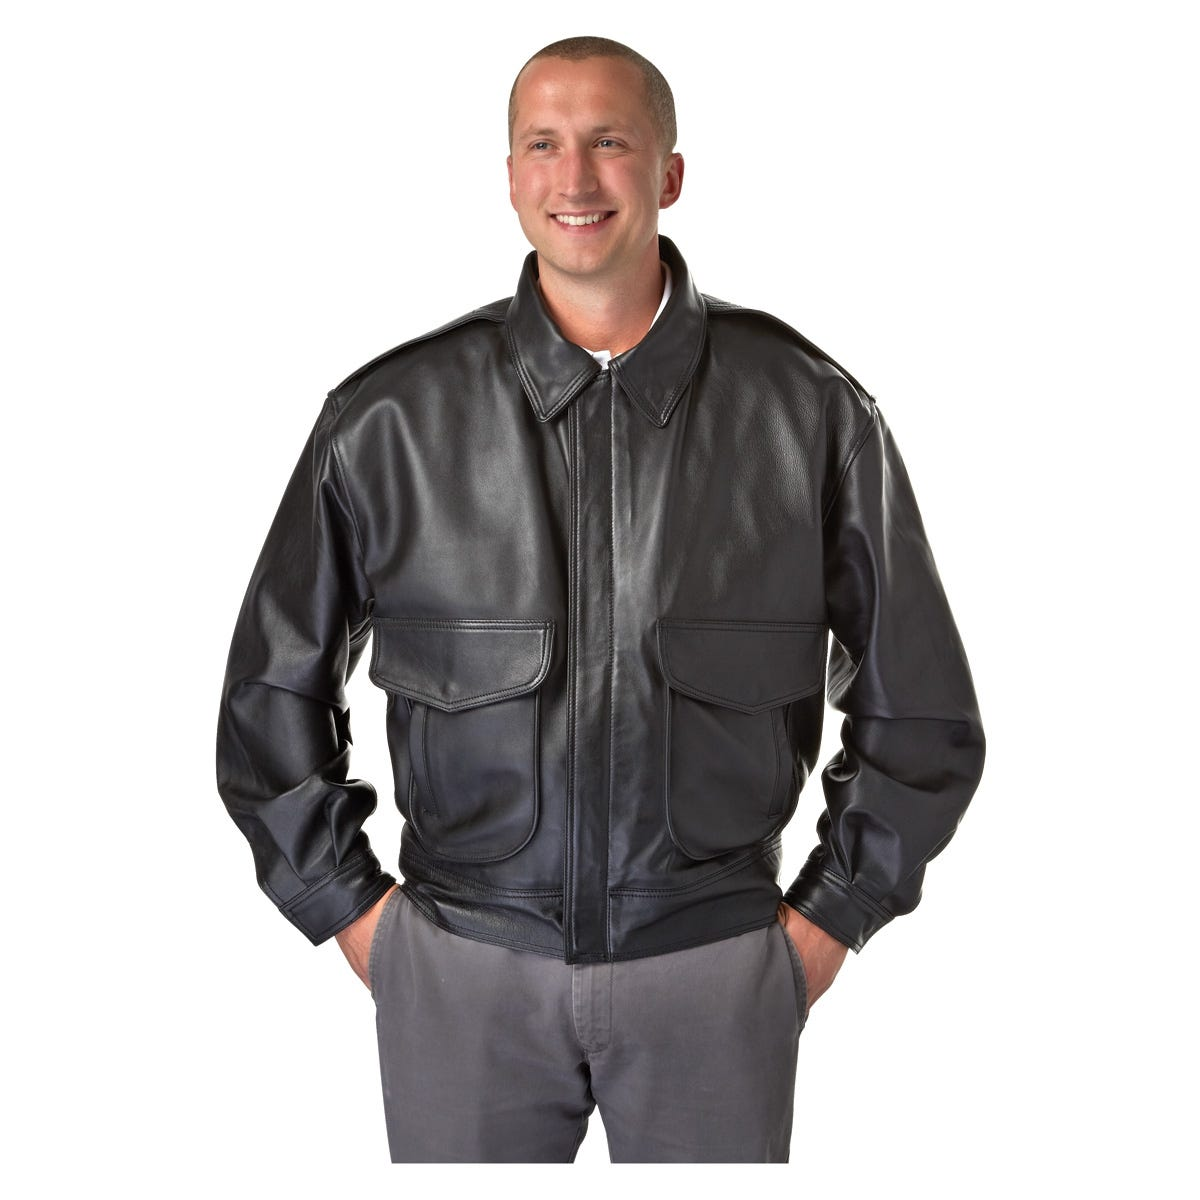 Super Soft Airline Captain's Leather Jacket